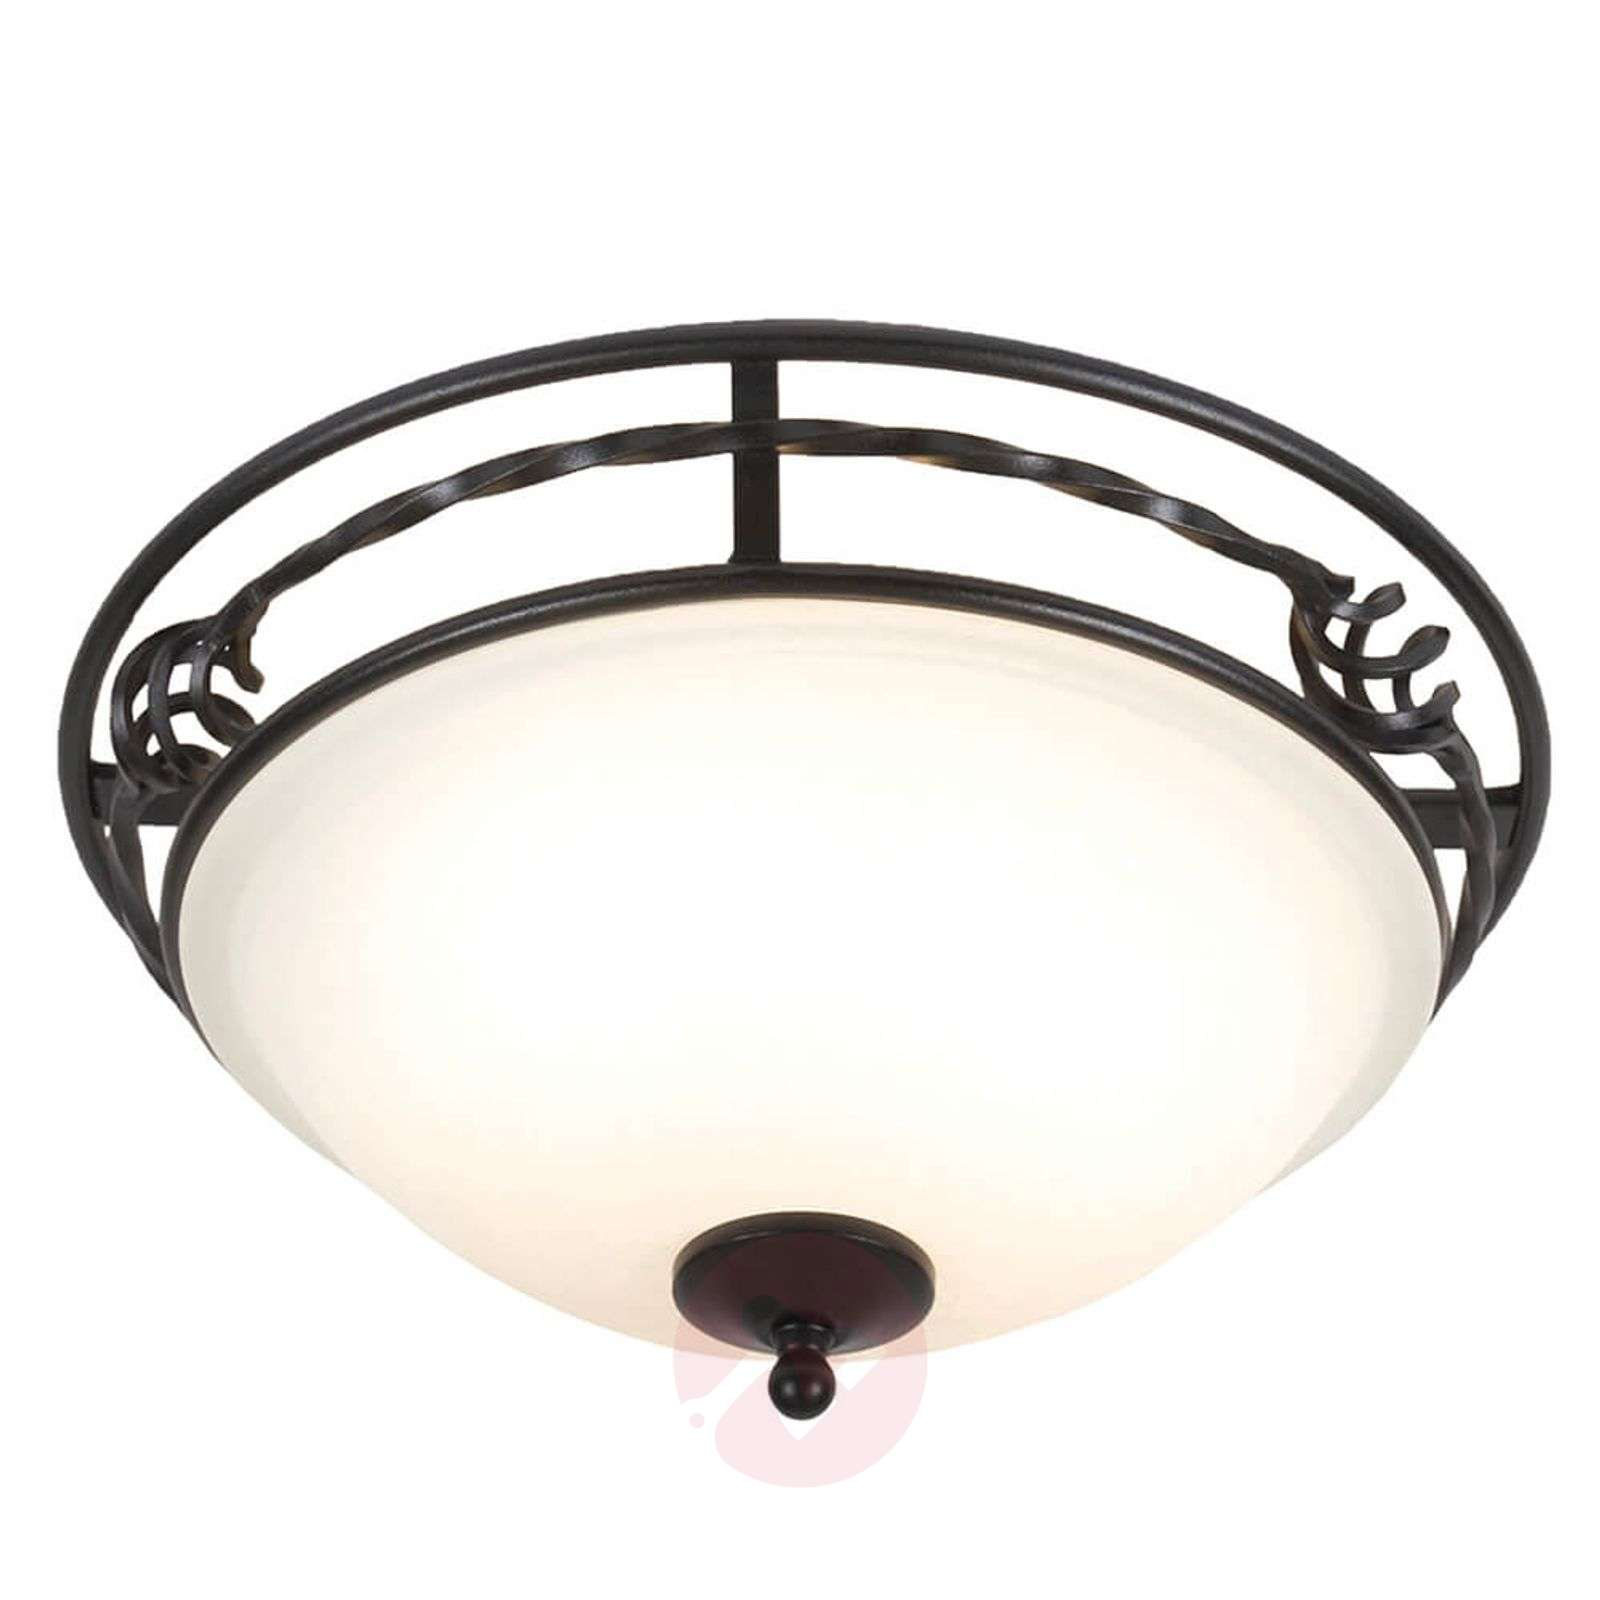 Attractive ceiling light Pembroke black frame-3048628-01